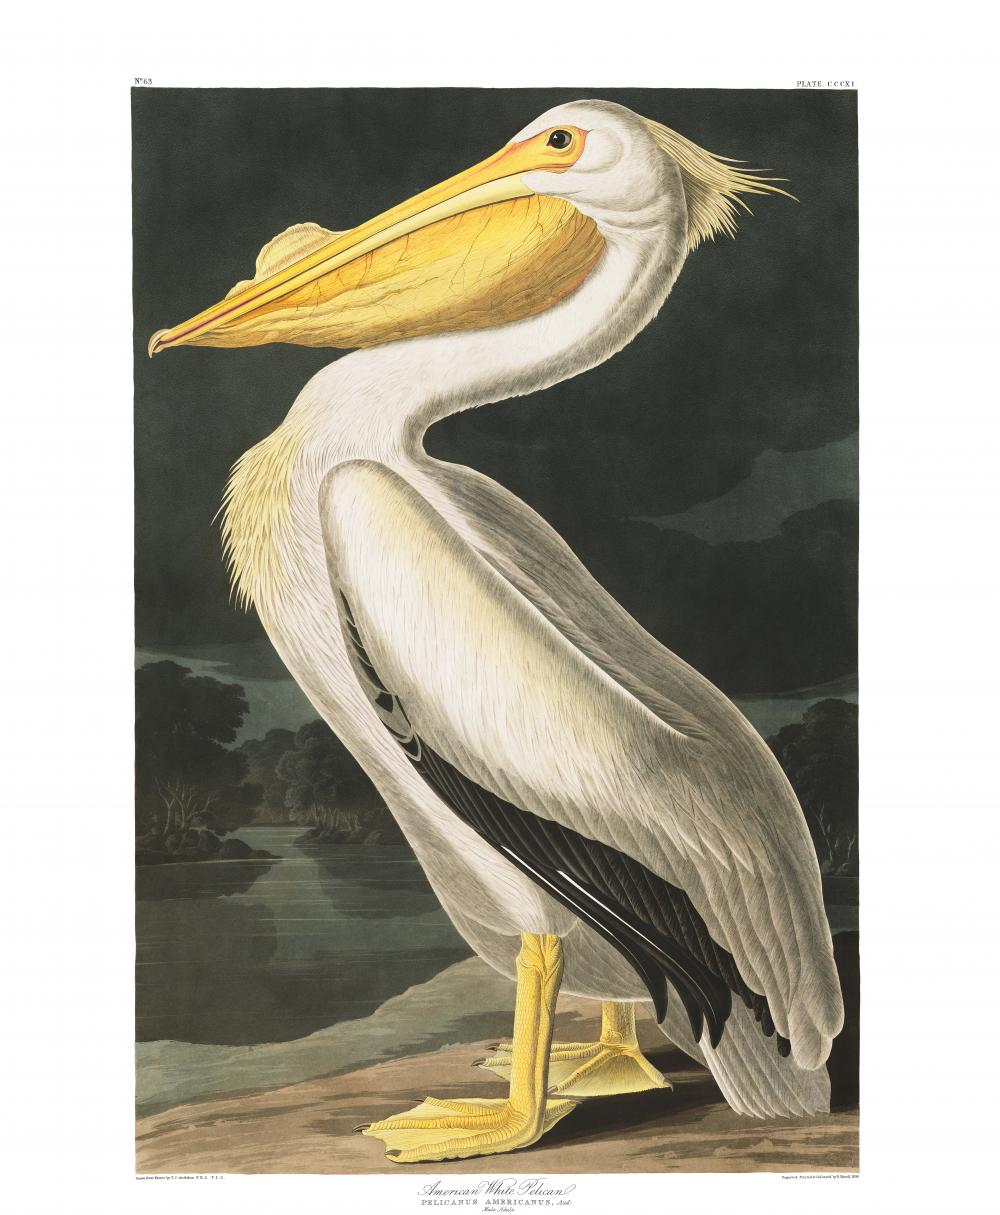 an illustration of a white pelican